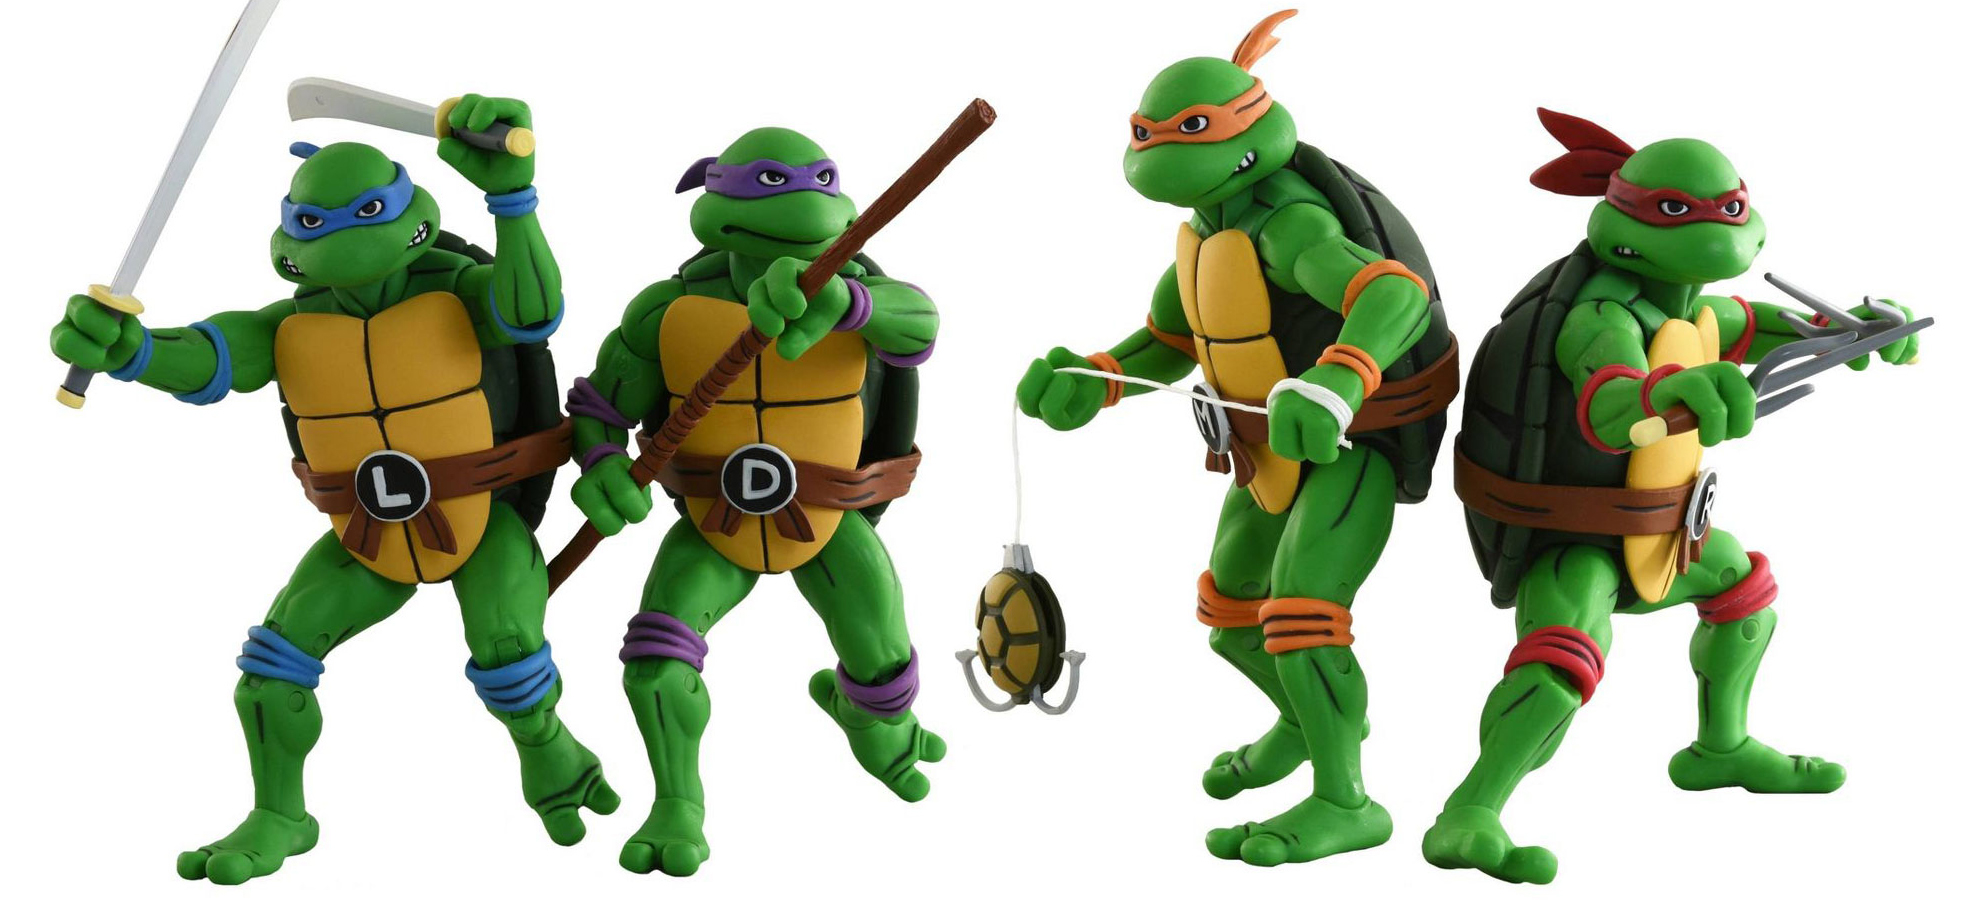 Cool Stuff Neca Animated Teenage Mutant Ninja Turtles Action Figures Get A New Wave Film